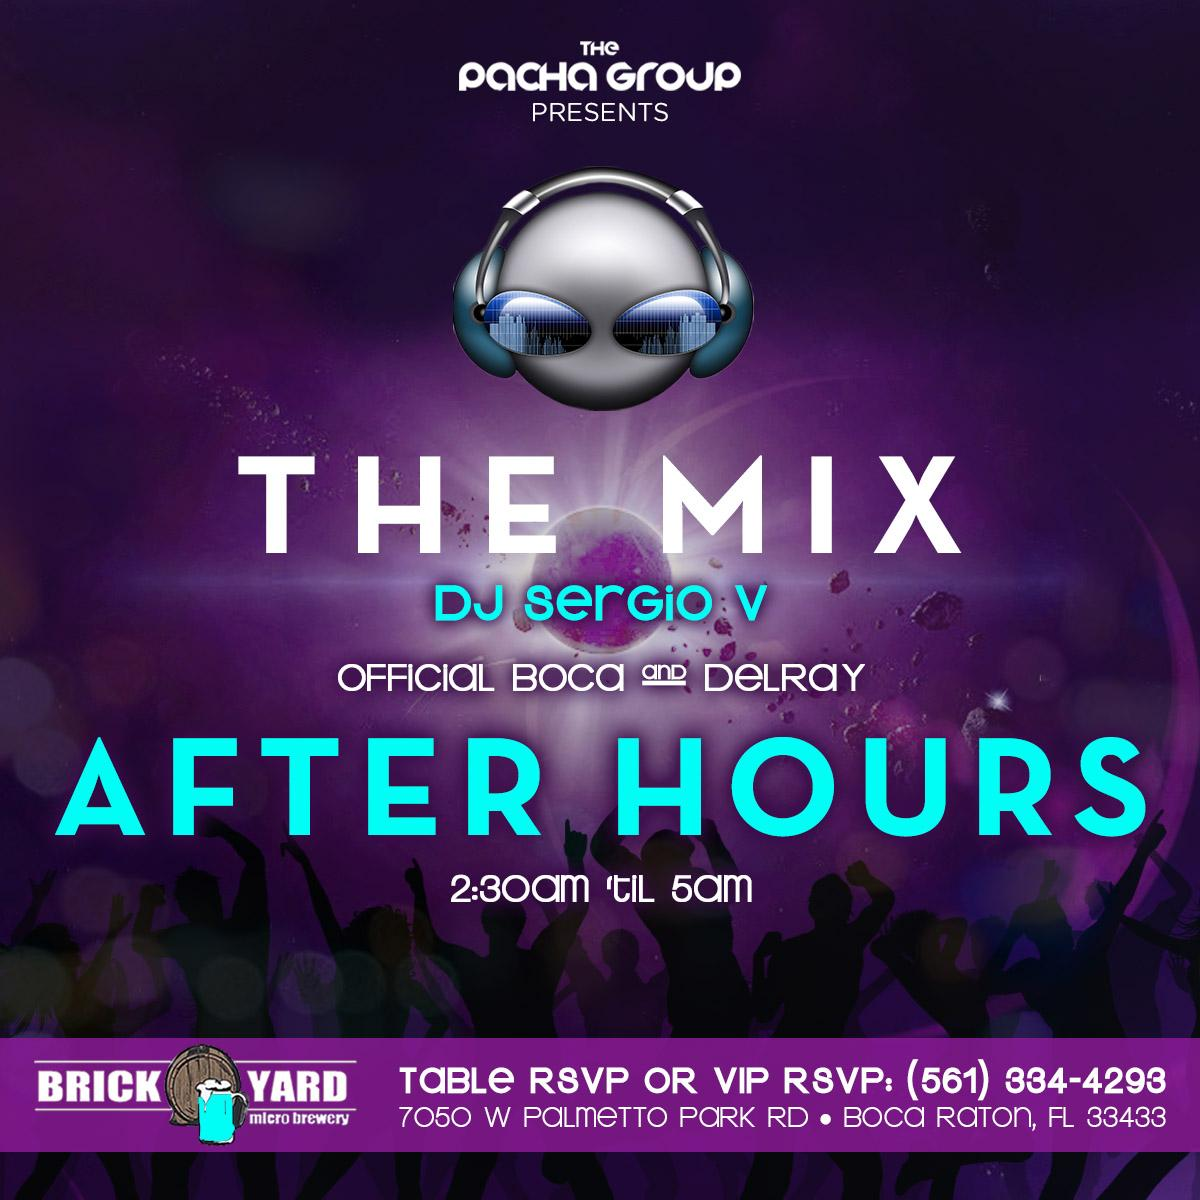 THE MIX Afterhours Fridays & Saturdays 2:30am-5am